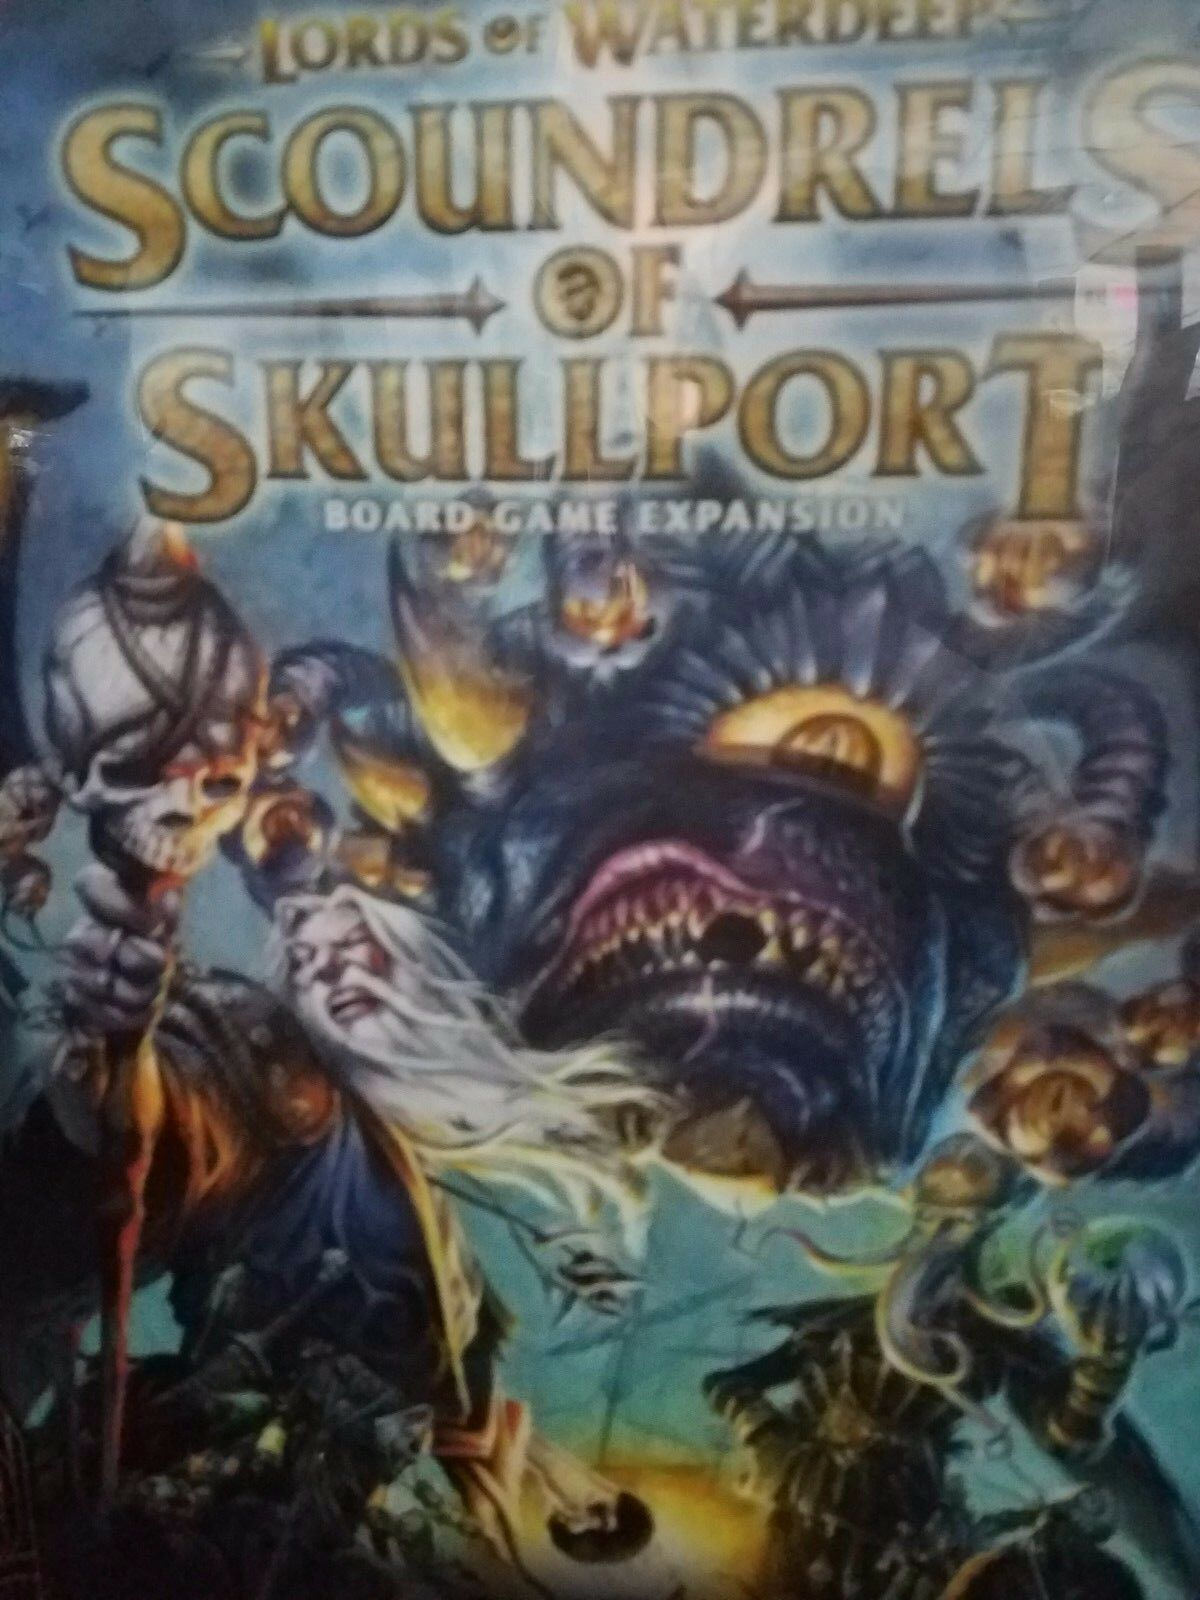 Herren waterdeep  gauner skullport expansion - brettspiel neu d & d